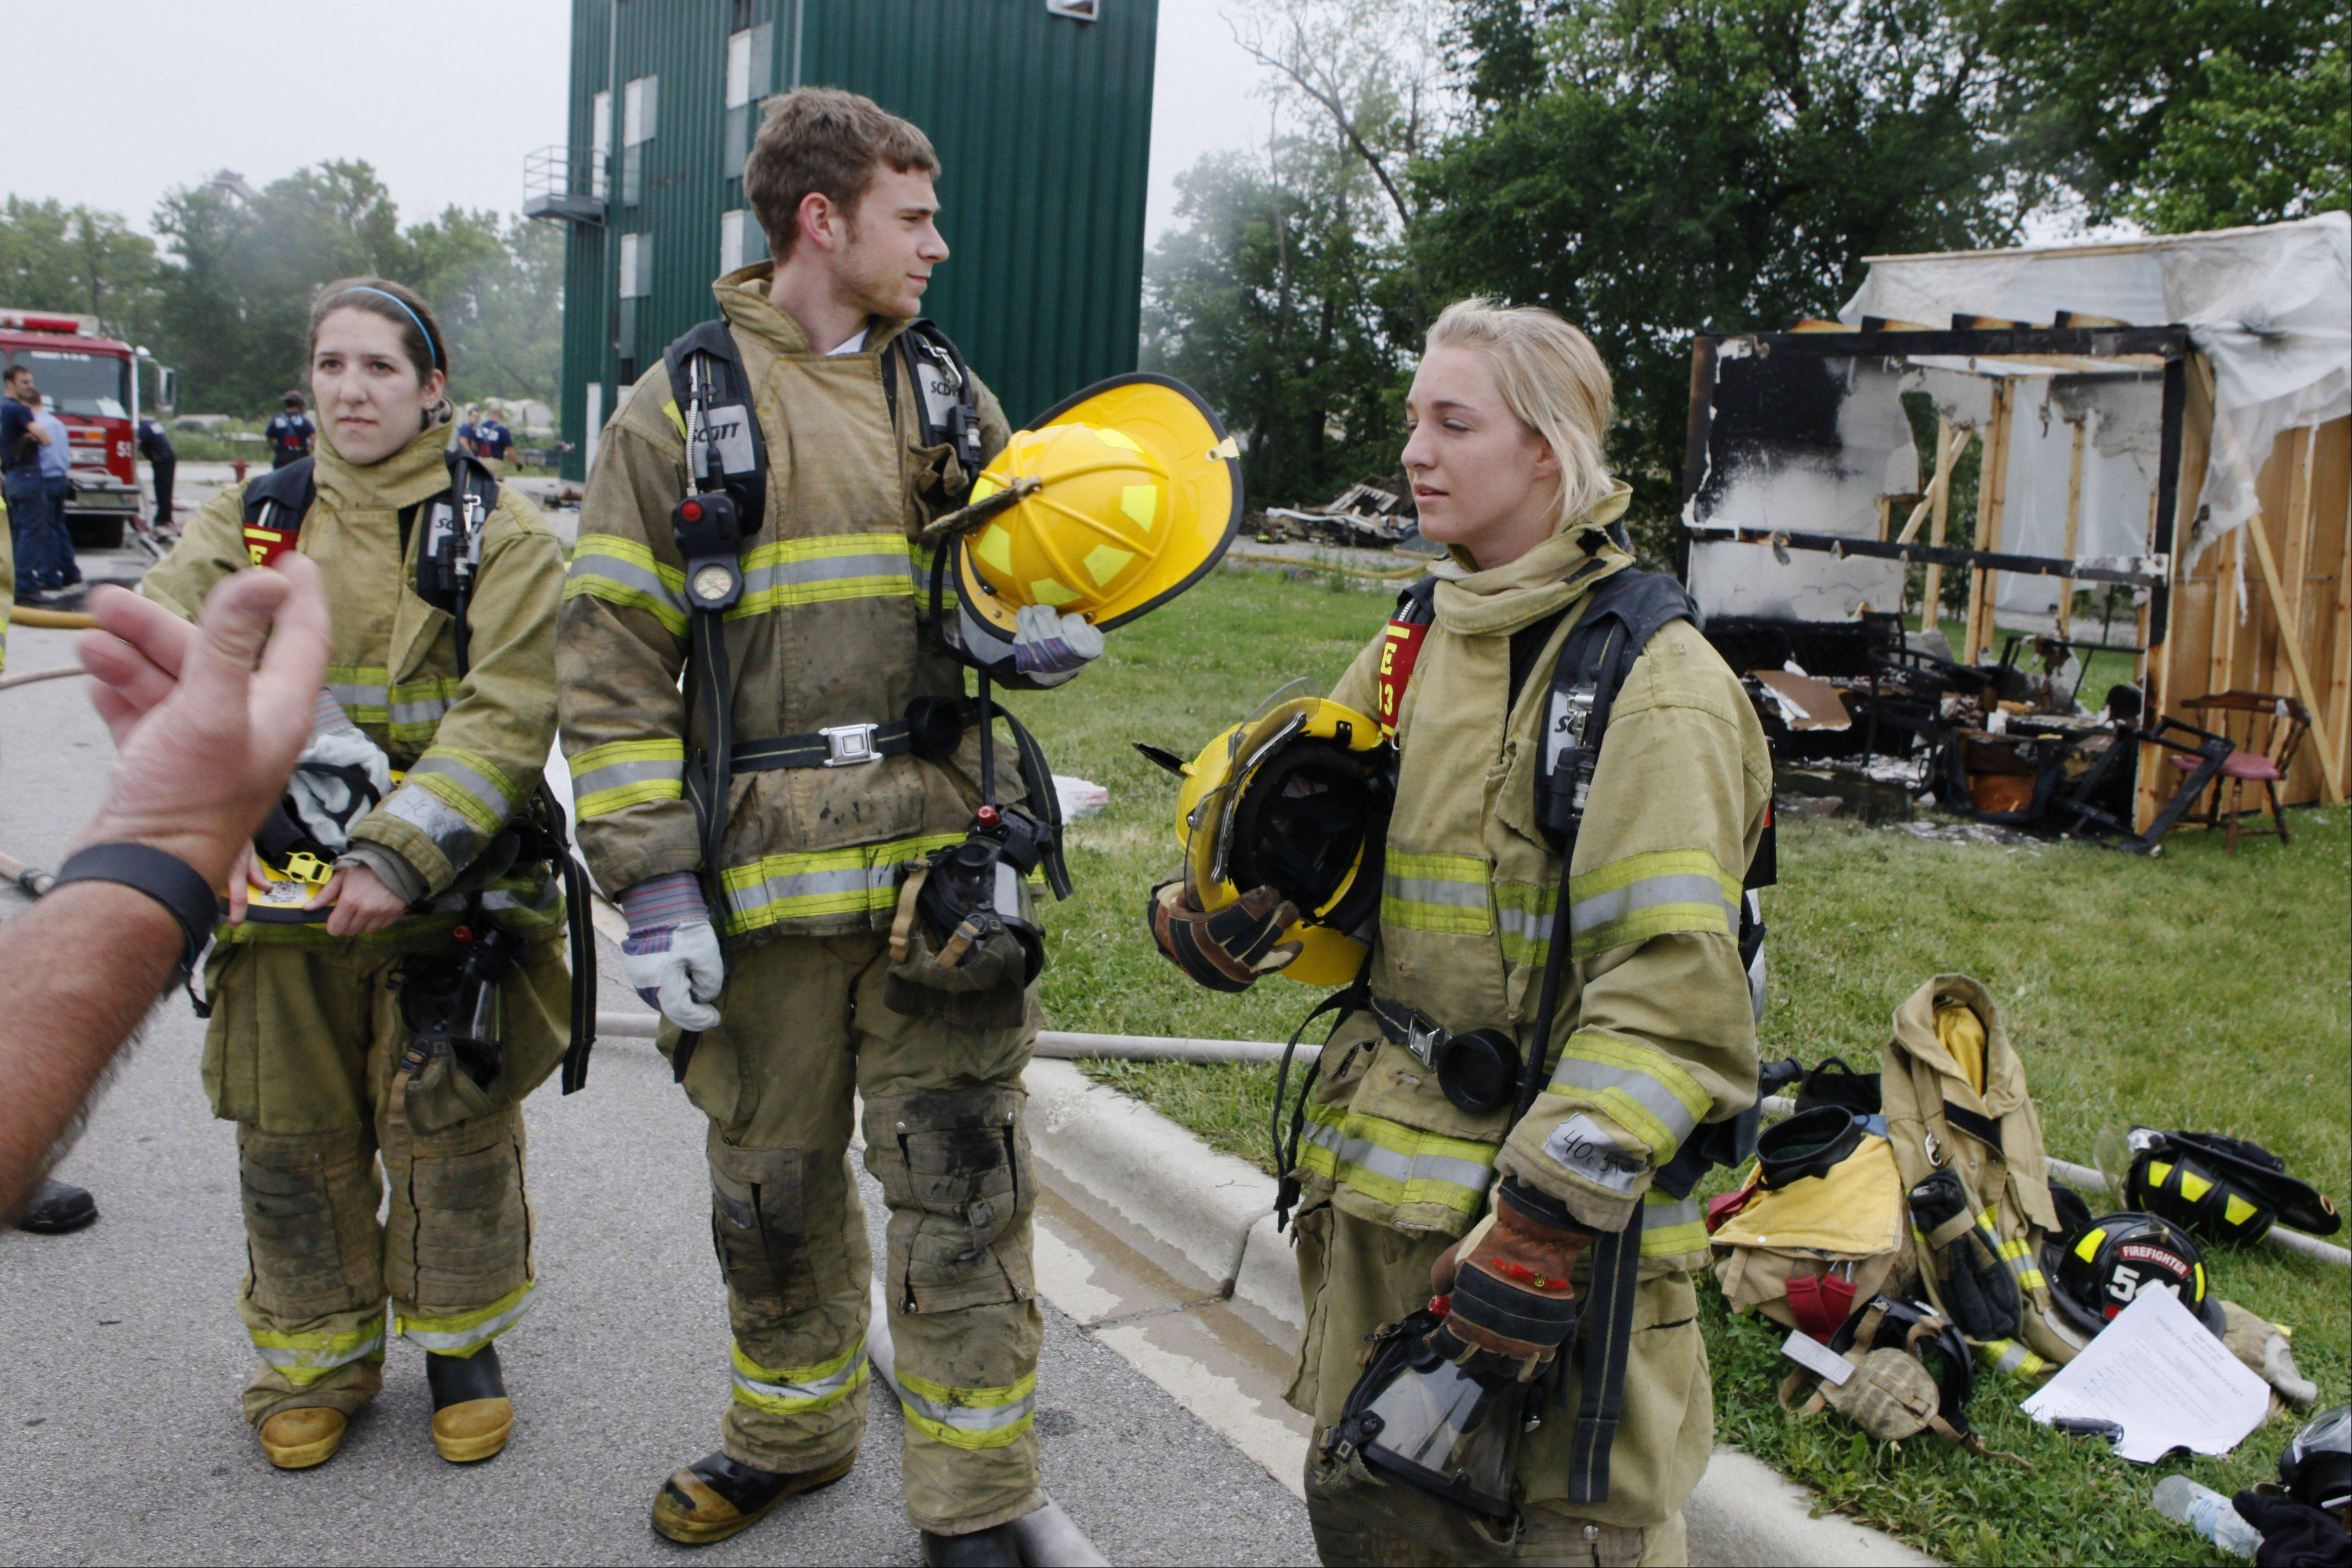 Megan Bannister, left, Brendan Bond and Erin Cinto listen to Aurora Local 99 personnel after extinguishing a simulated flashover.